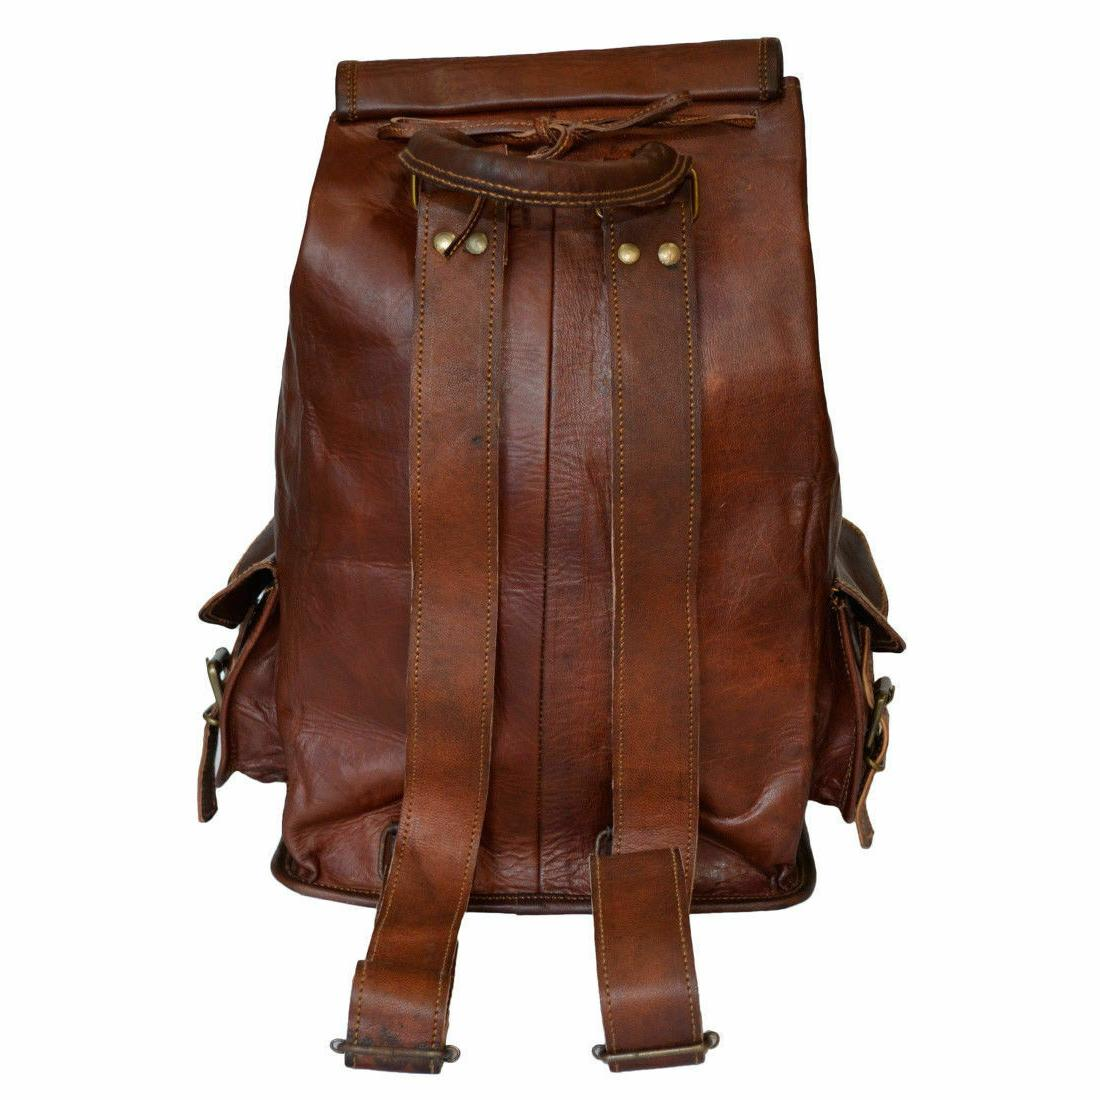 Genuine Leather Vintage Handmade Casual Messenger Bag